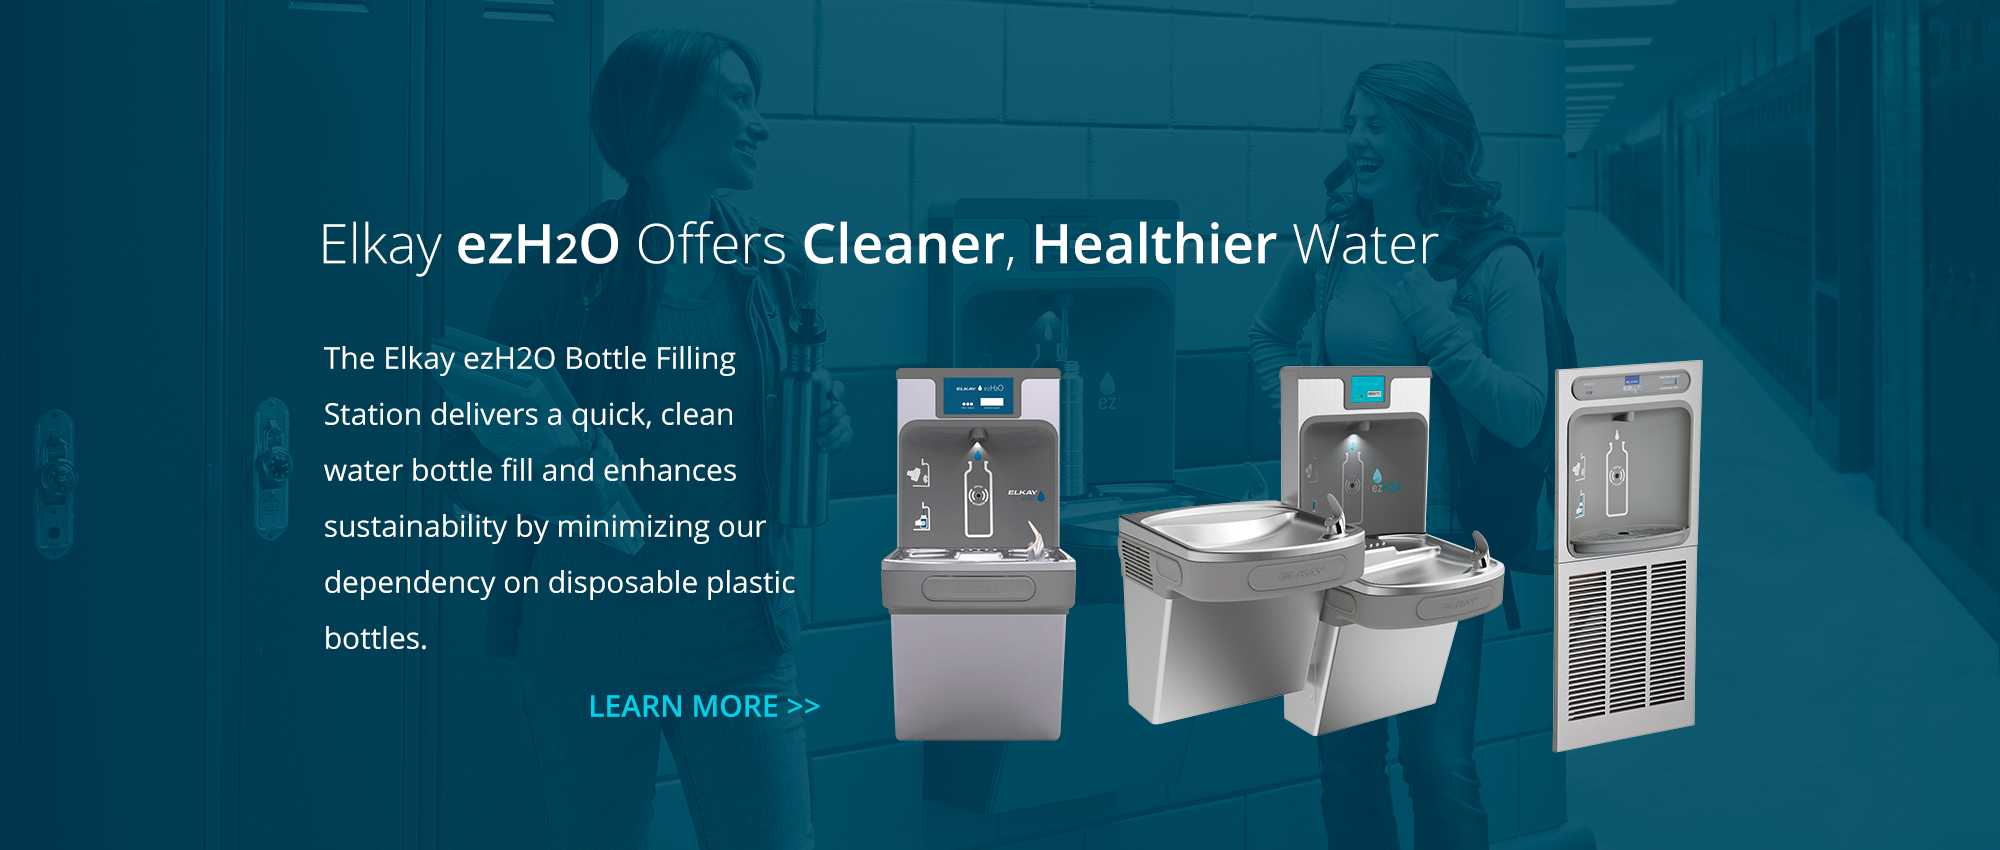 Elkay ezH2O Offers Cleaner Healthy Water